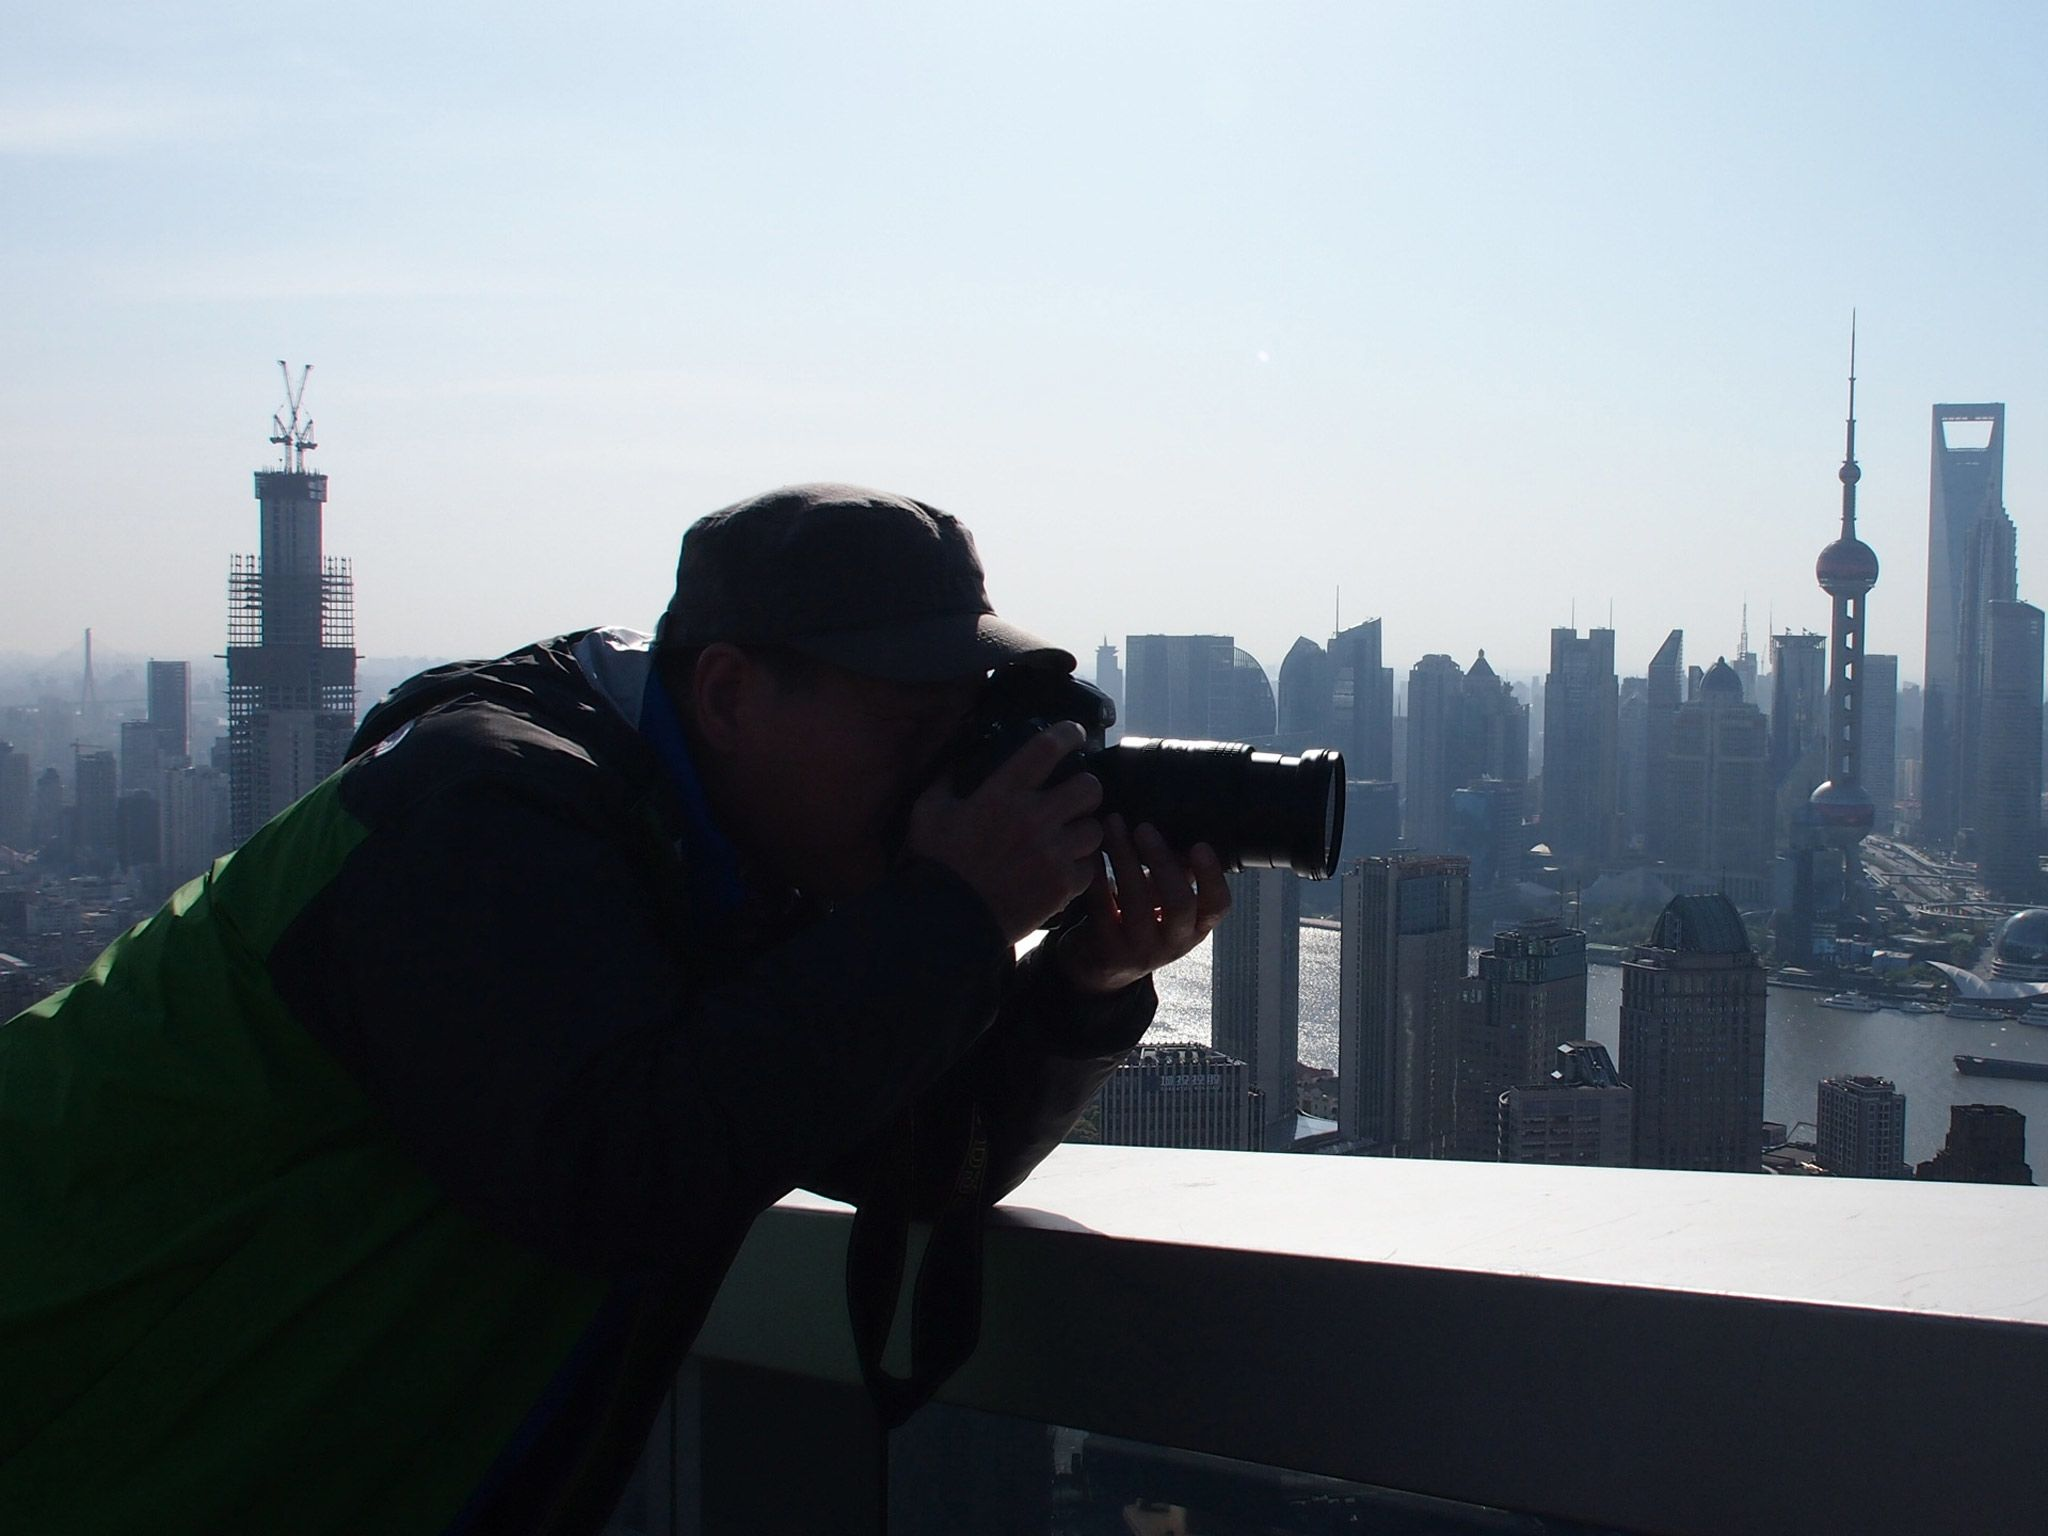 Shanghai: Photographer Zheng Xianzhang takes a photo from the rooftop of a skyscraper. [Photo of the day - ژولیه 2015]